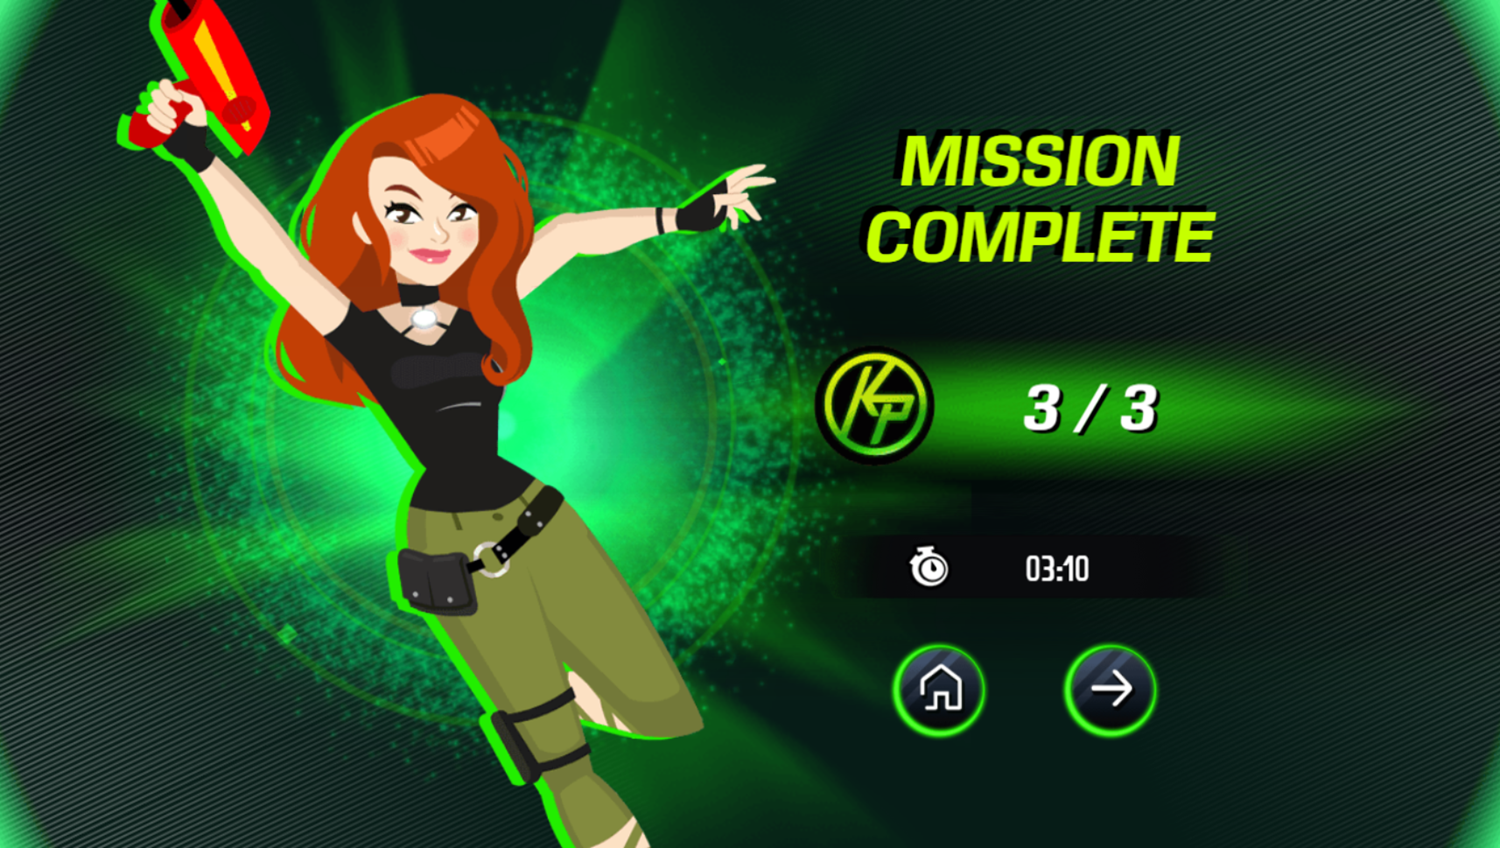 Kim Possible Mission Improbable Game Mission Complete Screenshot.